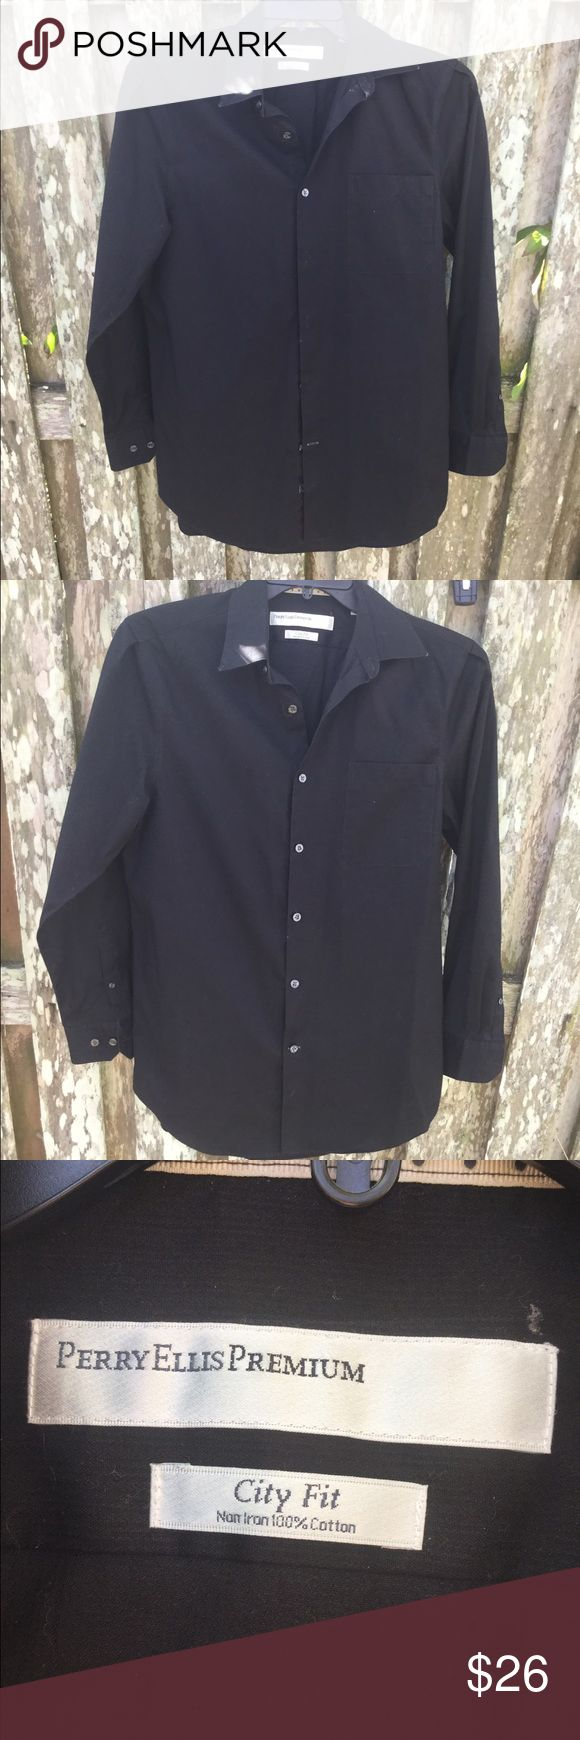 "Men's black suit/tux shirt This small tux shirt is perfect for dressing up, or even casual dress. All the buttons are intact and the collar is still stiff. Only worn twice. Perry Ellis ""Premium"" originally $36 Perry Ellis Shirts Dress Shirts"